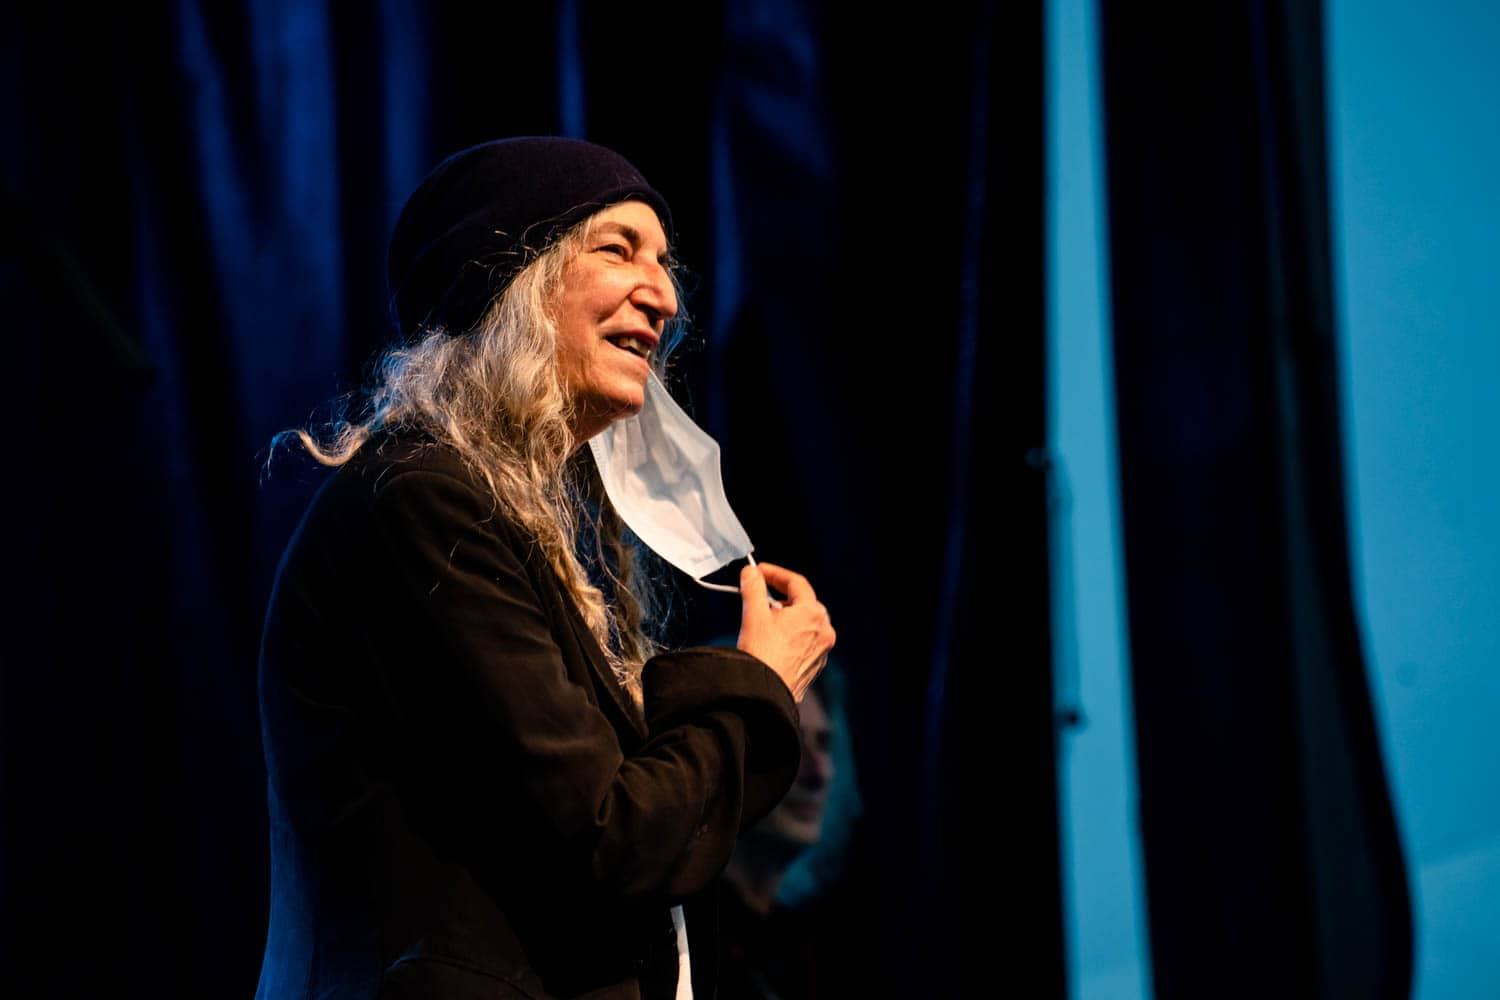 Patti Smith at Surly Festival Field - photo by Laura Buhman